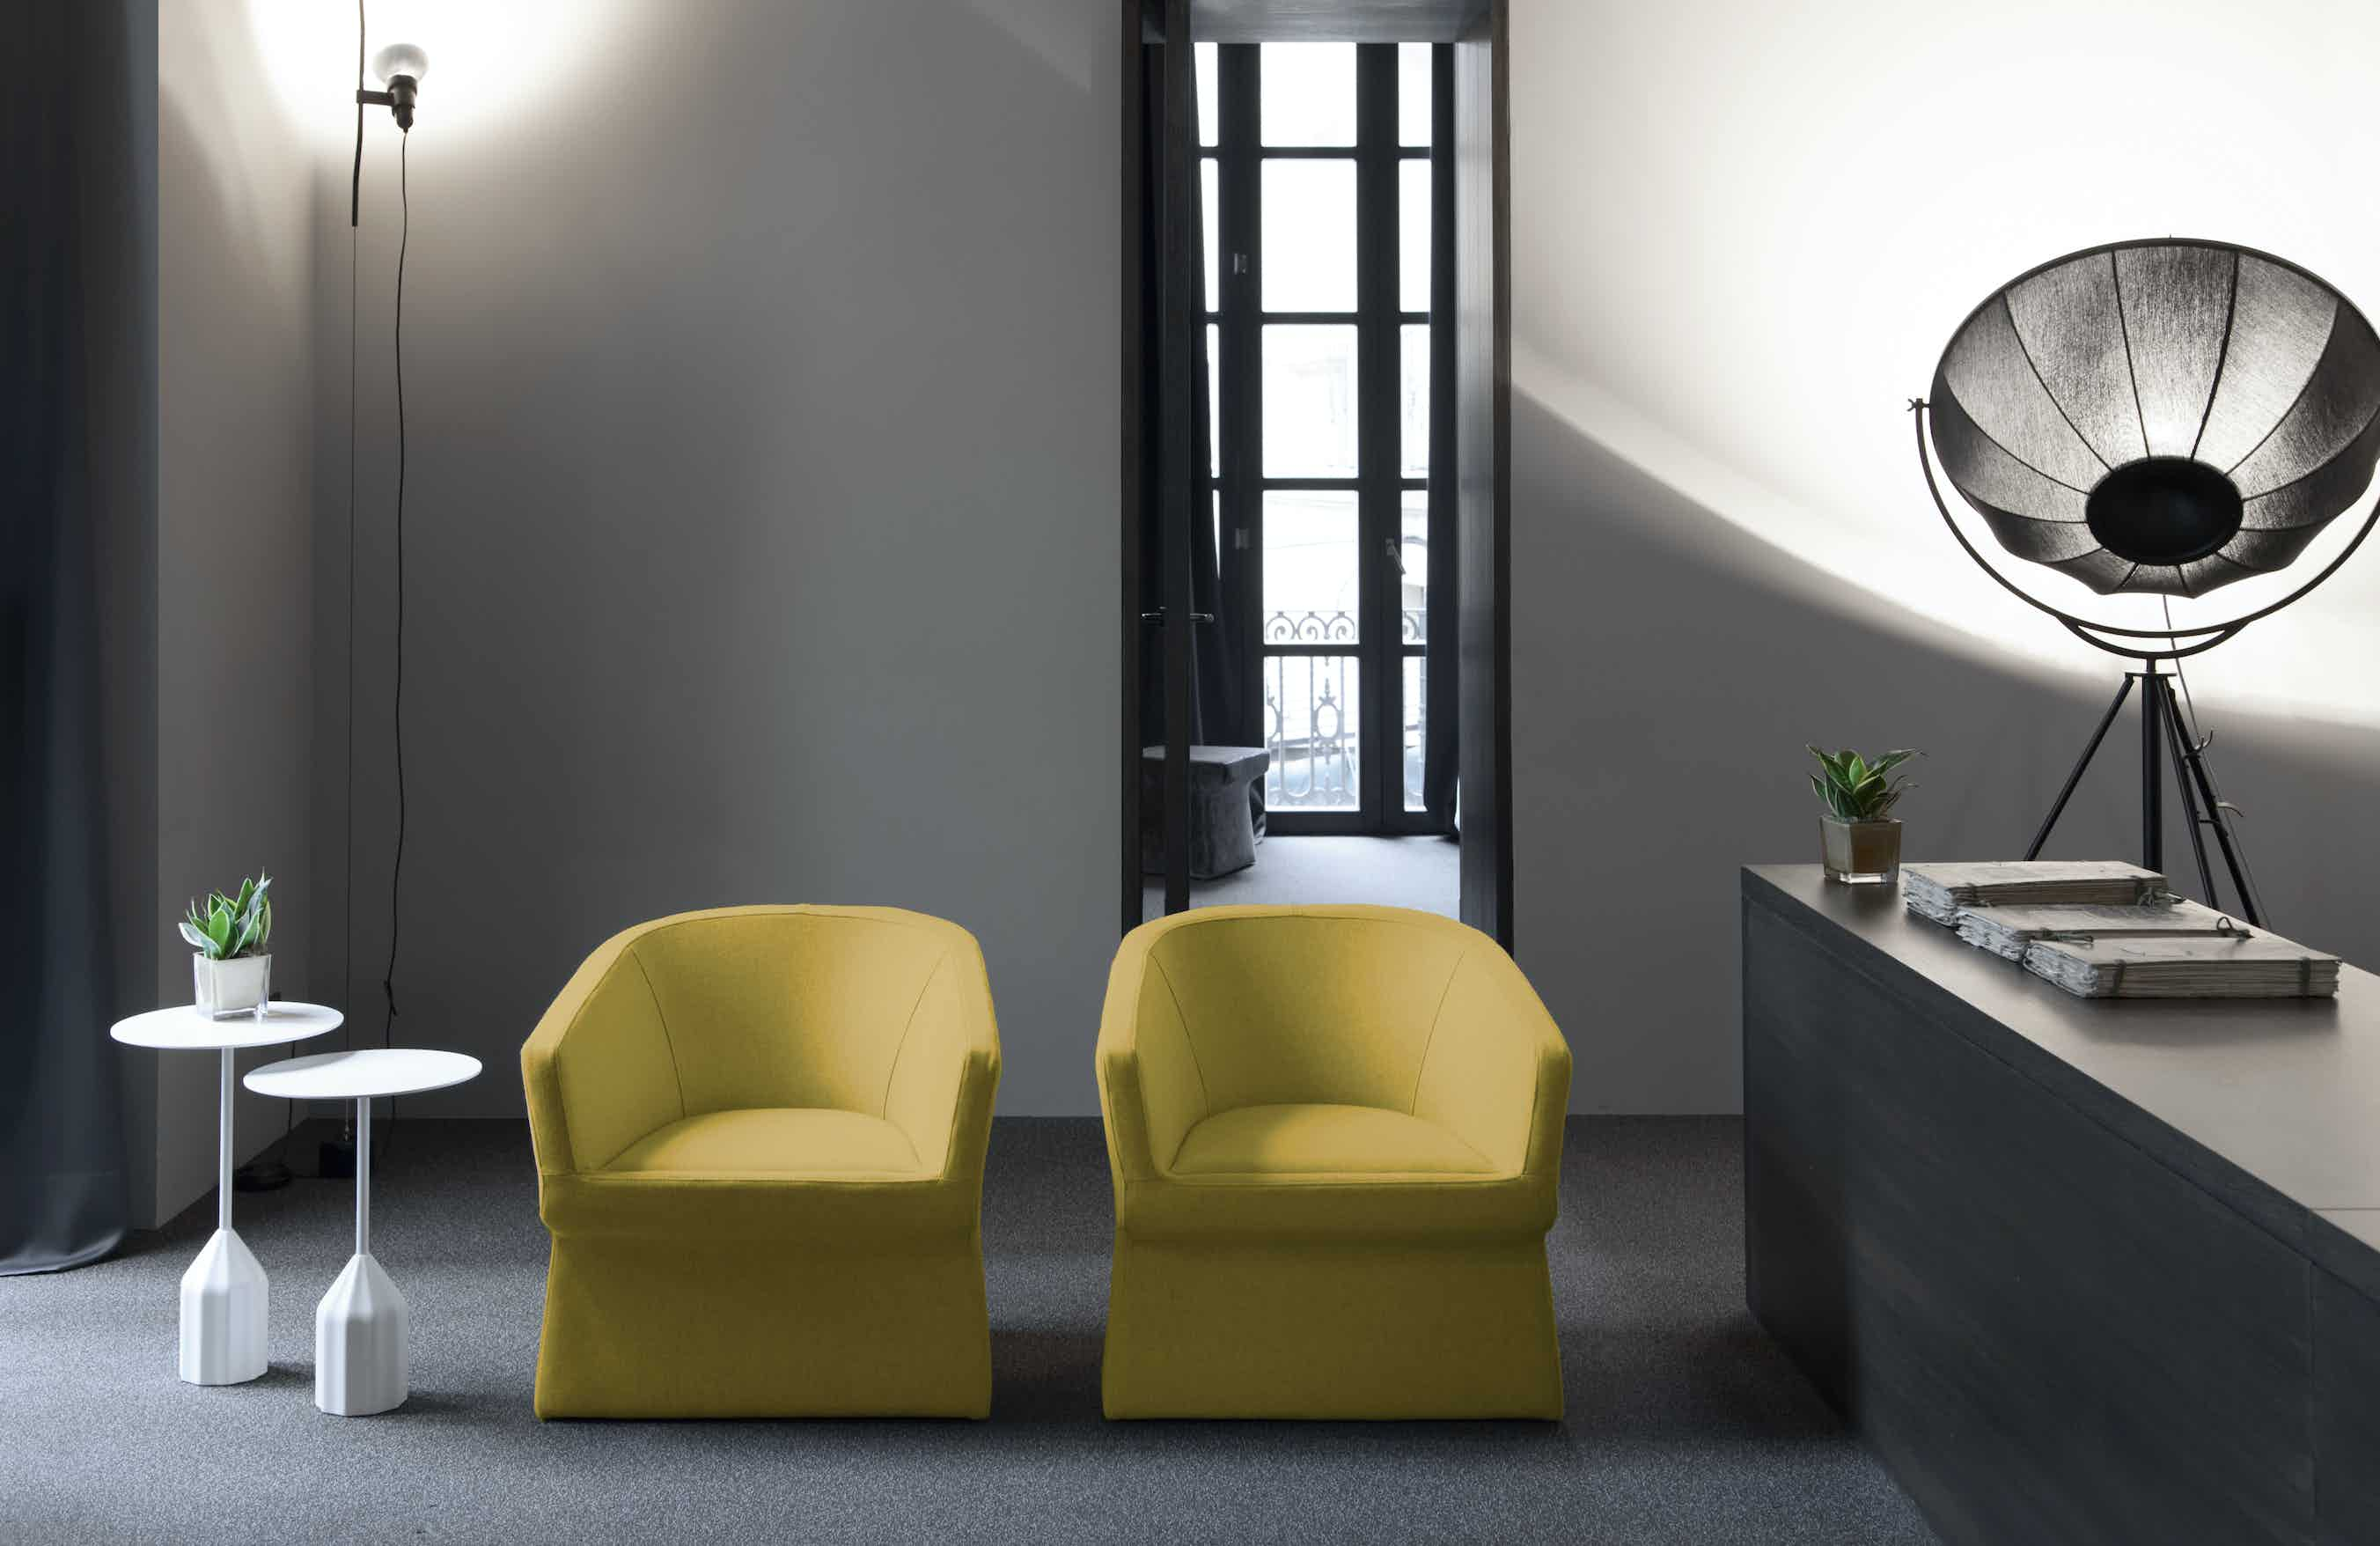 Viccarbe-front-yellow-fedele-armchair-institu-haute-living